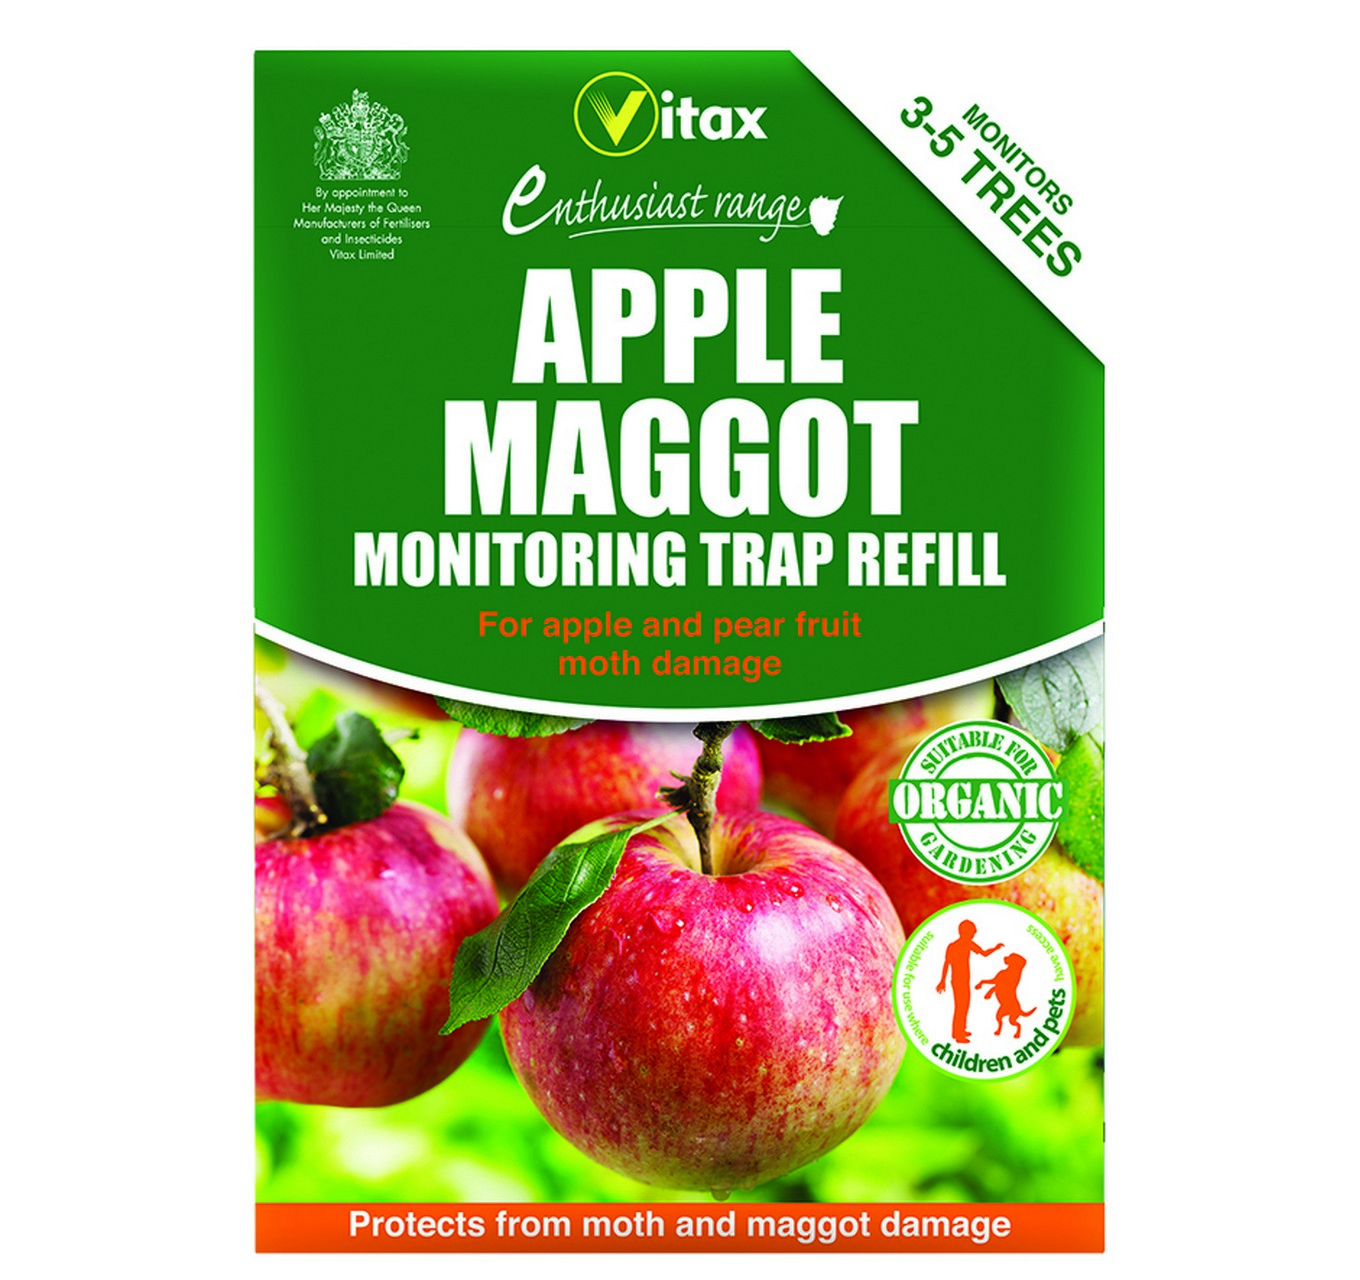 Apple Maggot Trap Refill